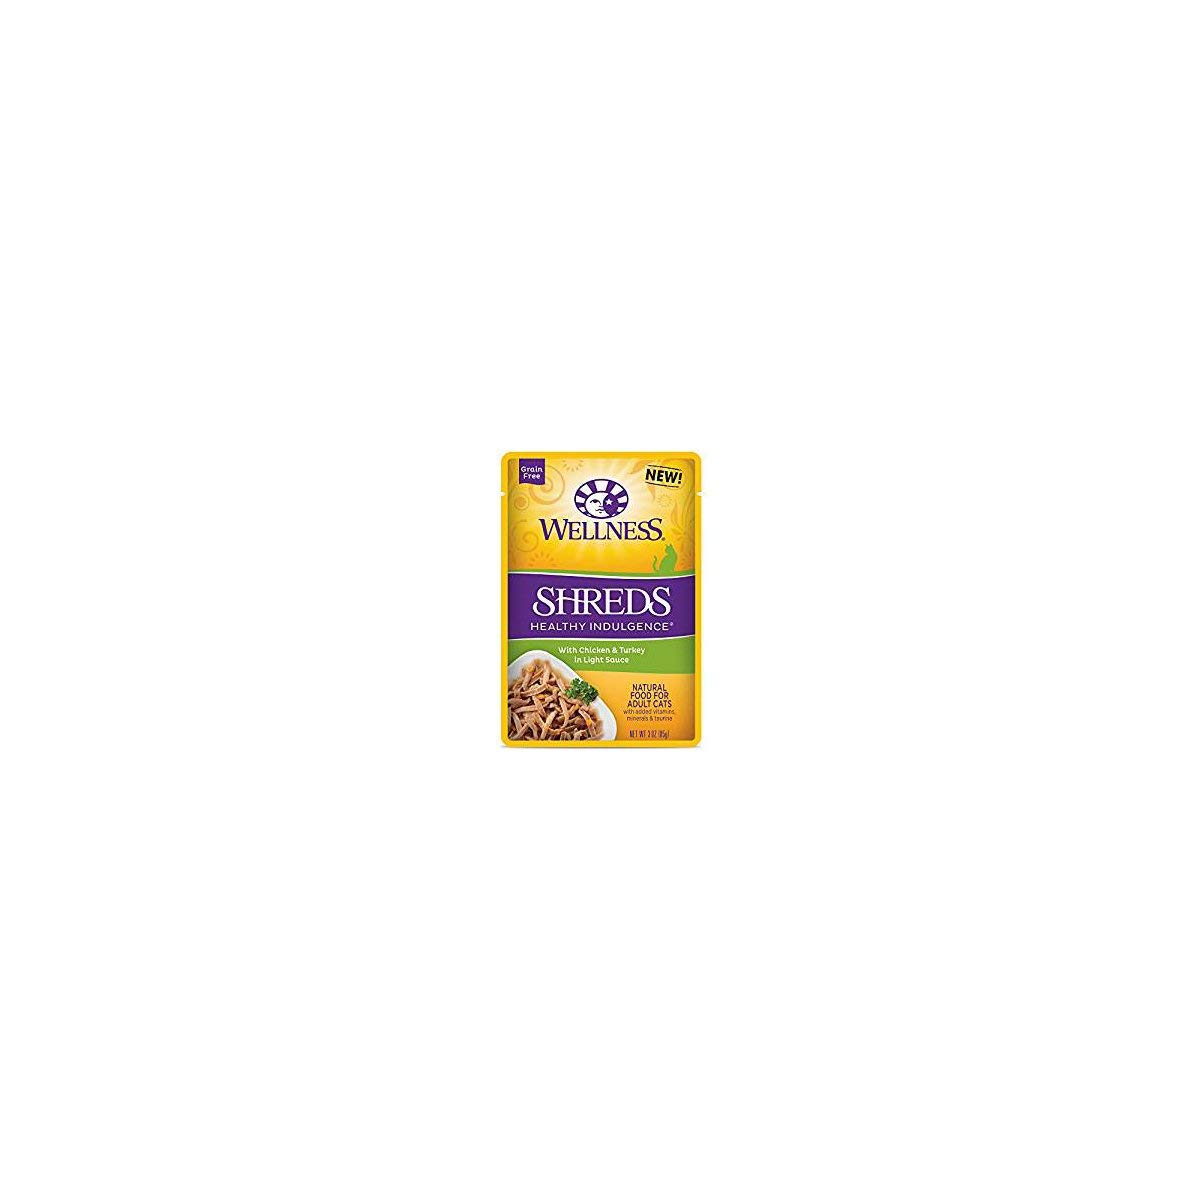 Wellness, Cat Food Pouch Healthy Indulgence Chicken Turkey, 3 Ounce by Wellness Natural Pet Food